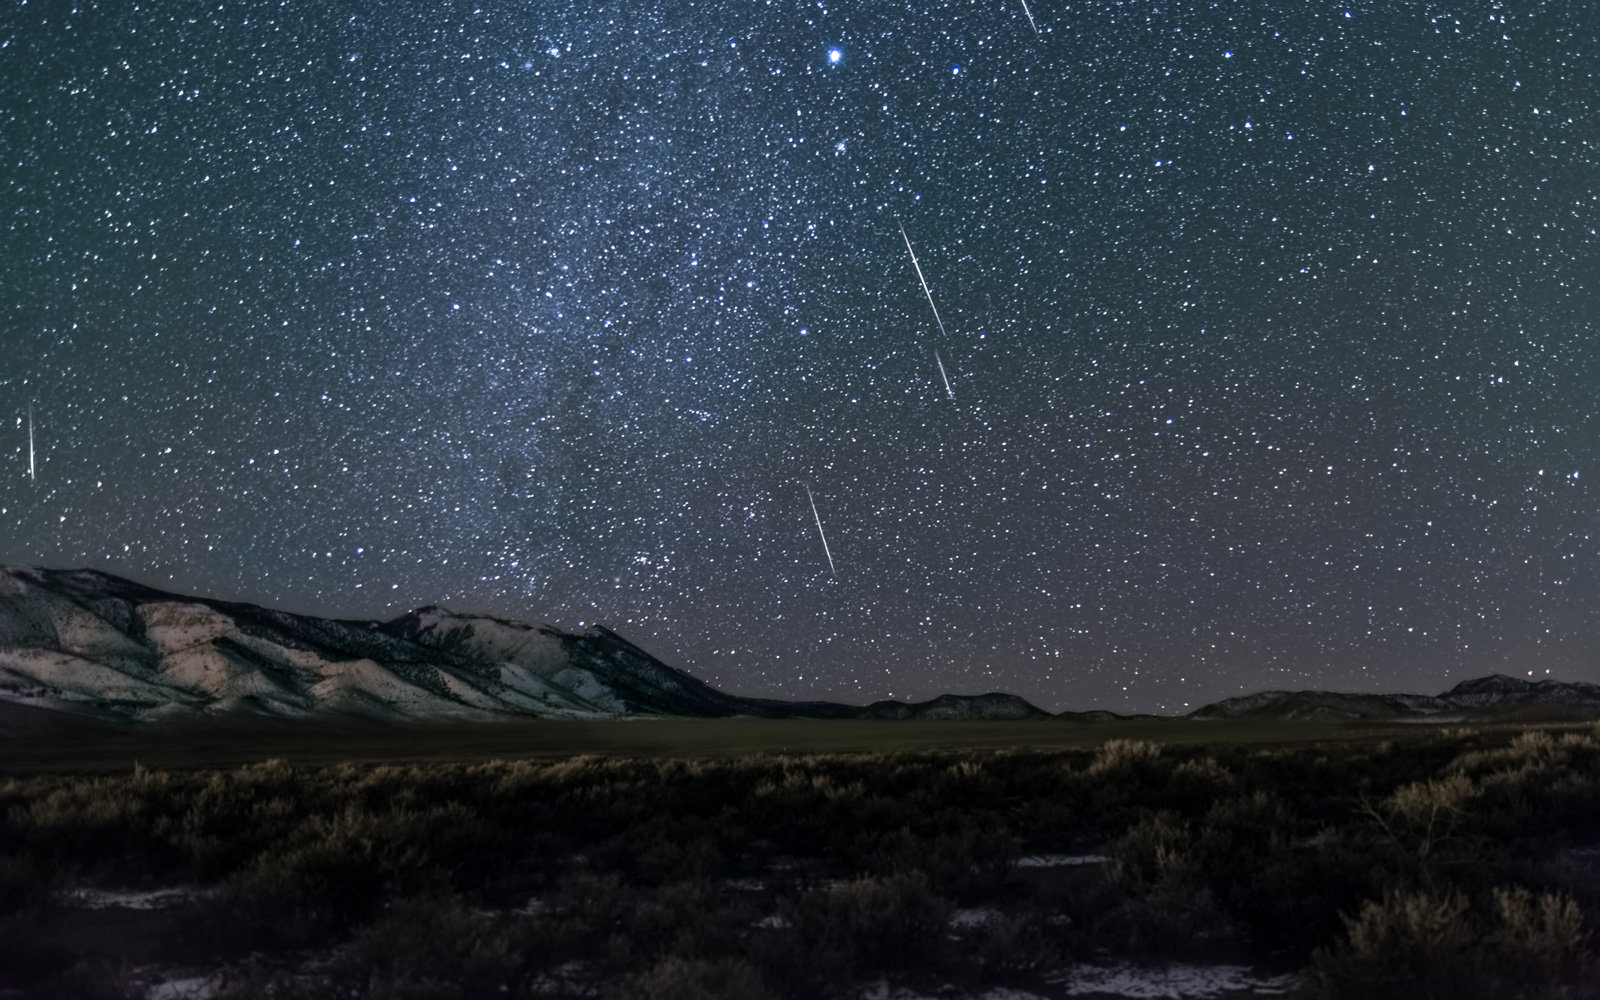 Colorful shooting stars will light up the sky like celestial Christmas lights this weekend